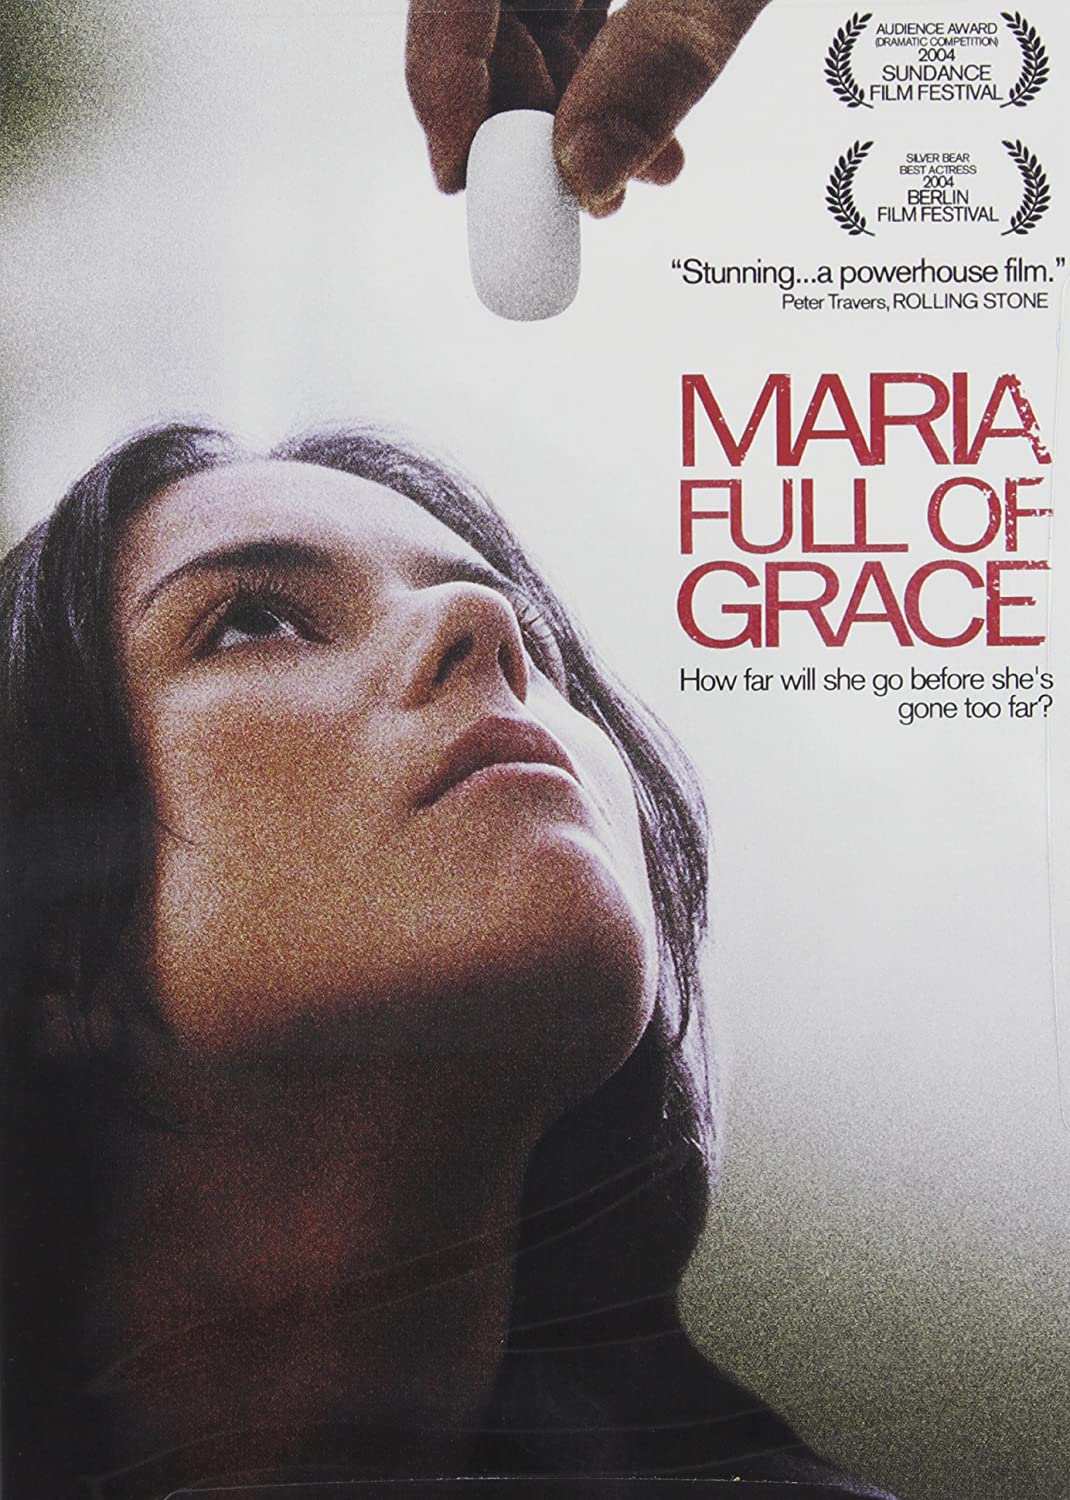 Amazon.com: Maria Full of Grace (DVD): Catalina Sandino ...